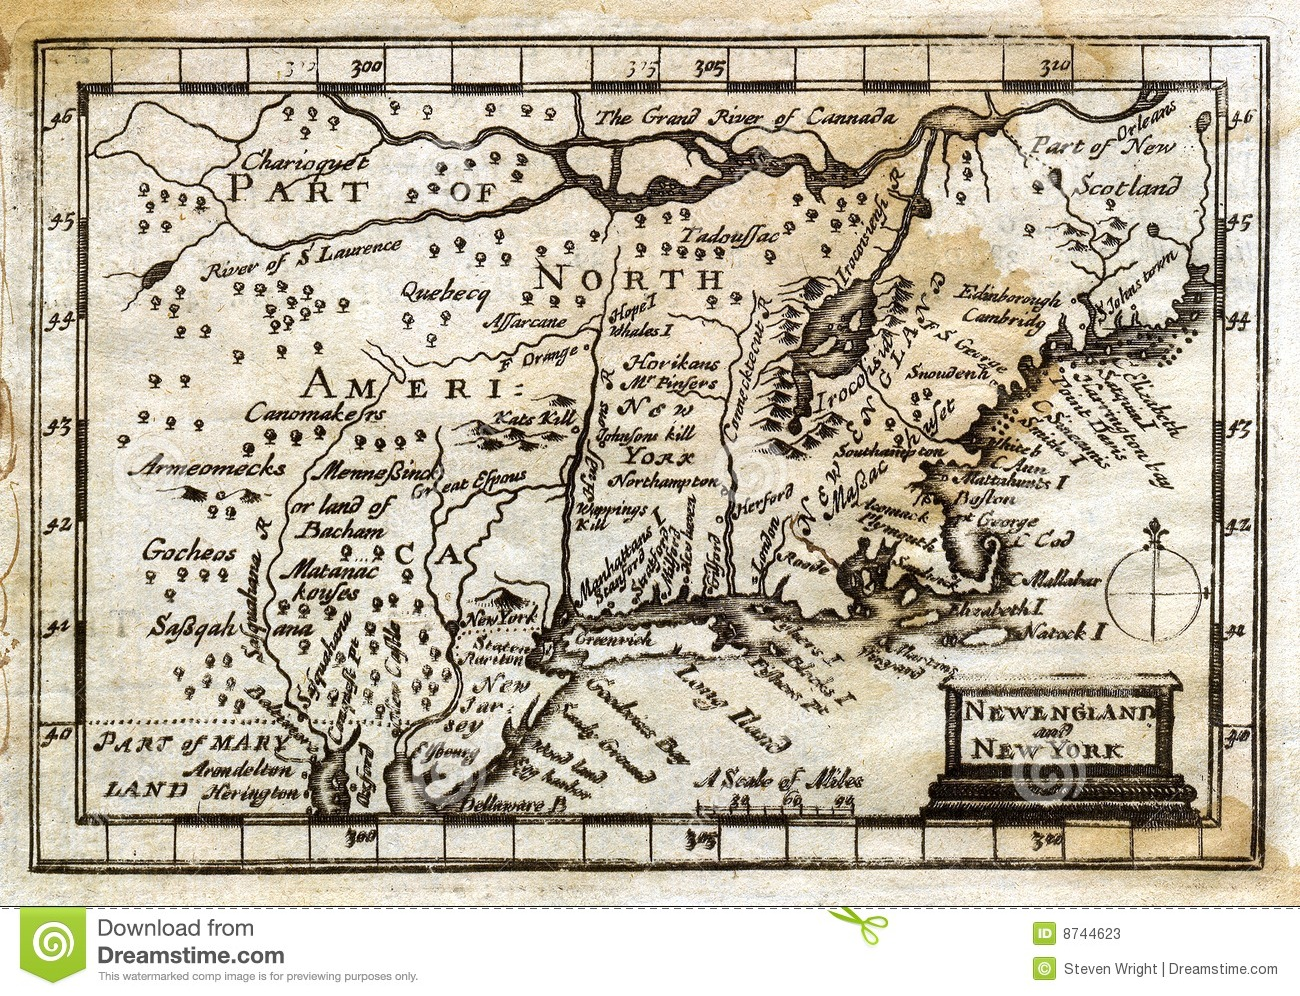 a history of the first colonies of new england The social and political structure of the new england colonies was shaped primarily by the harsh geography and the strict puritan religion of the first english colonists who settled there.